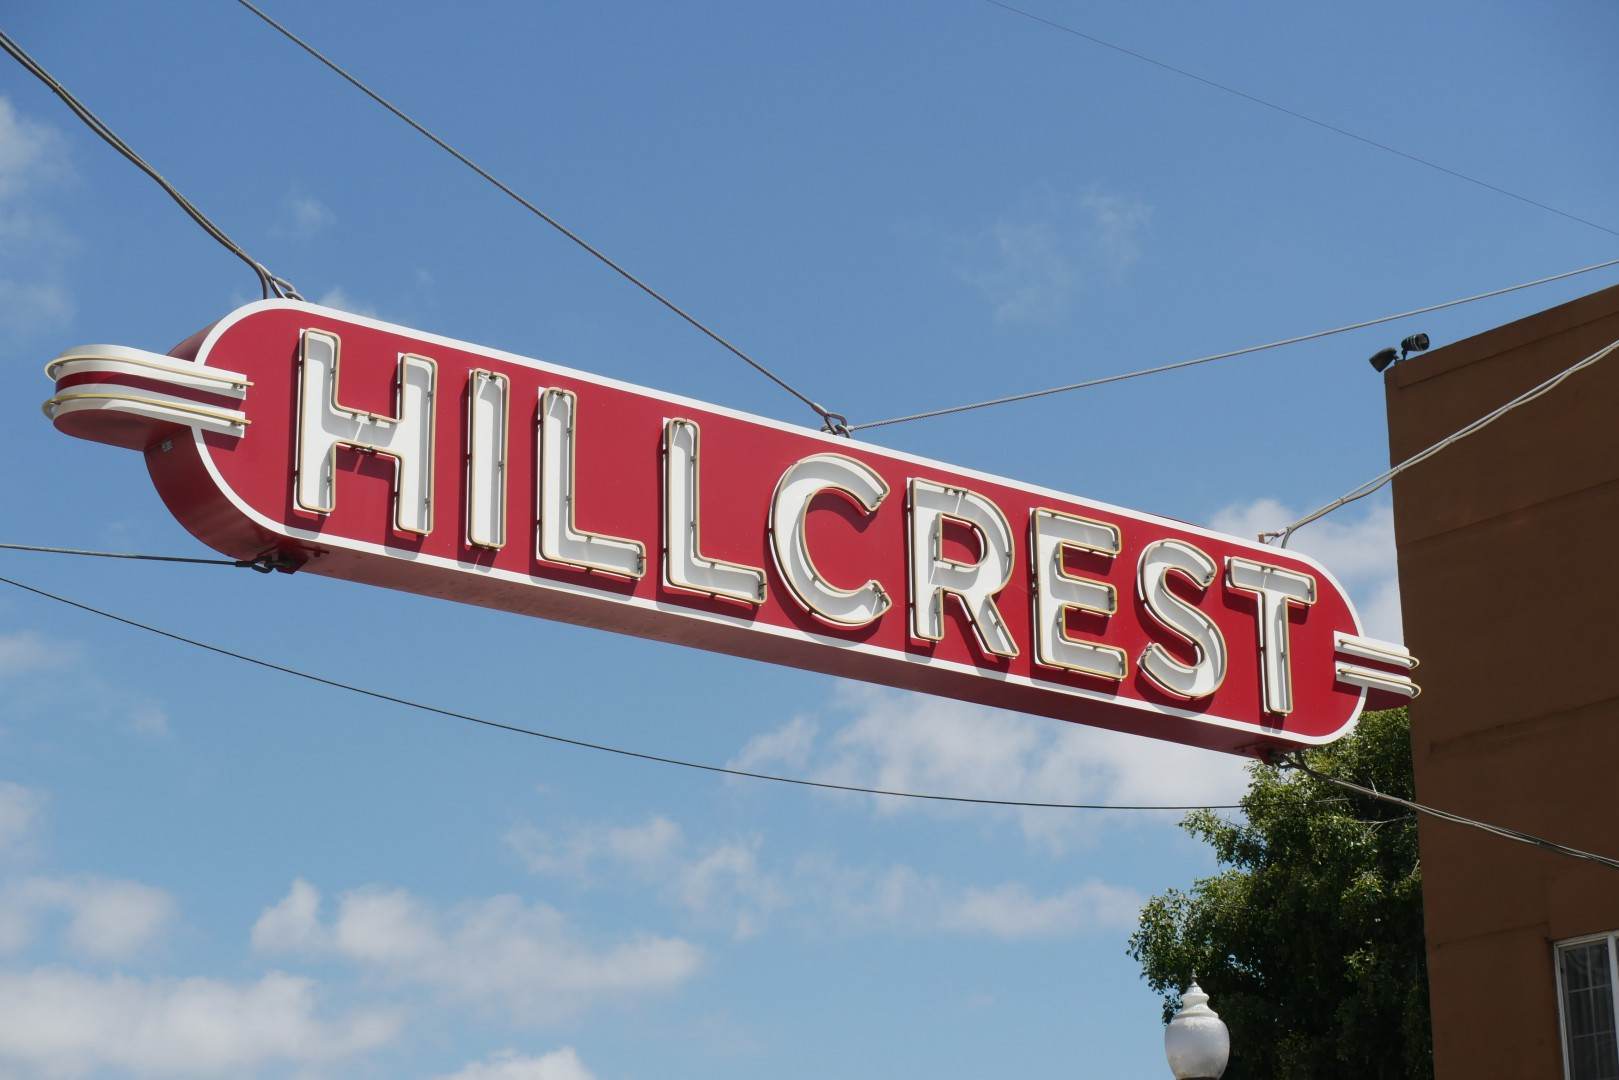 Top sign view in Hillcrest County California